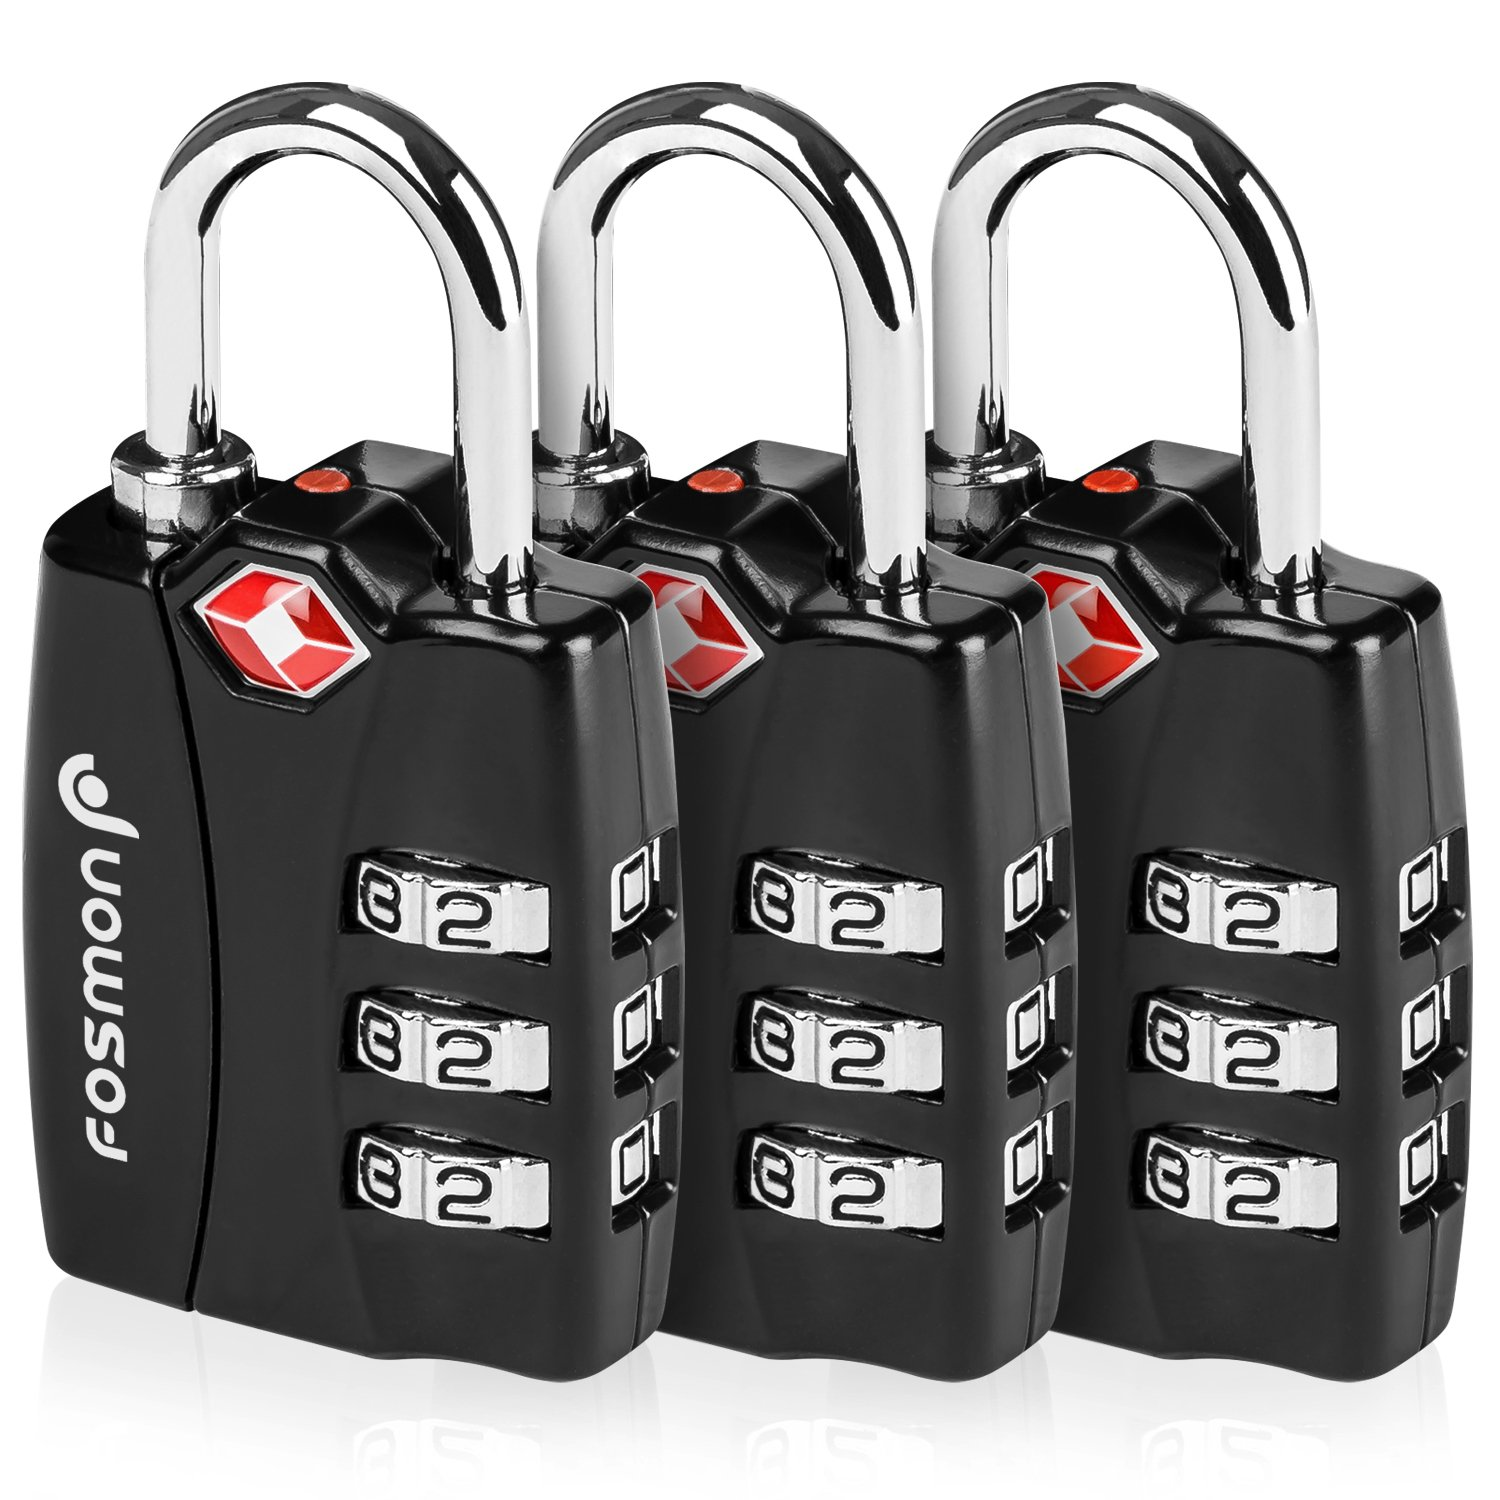 TSA Approved Luggage Locks, Fosmon (3 Pack) Open Alert Indicator 3 Digit Combination Padlock Codes with Alloy Body for Travel Bag, Suit Case, Lockers, Gym, Bike Locks or Other